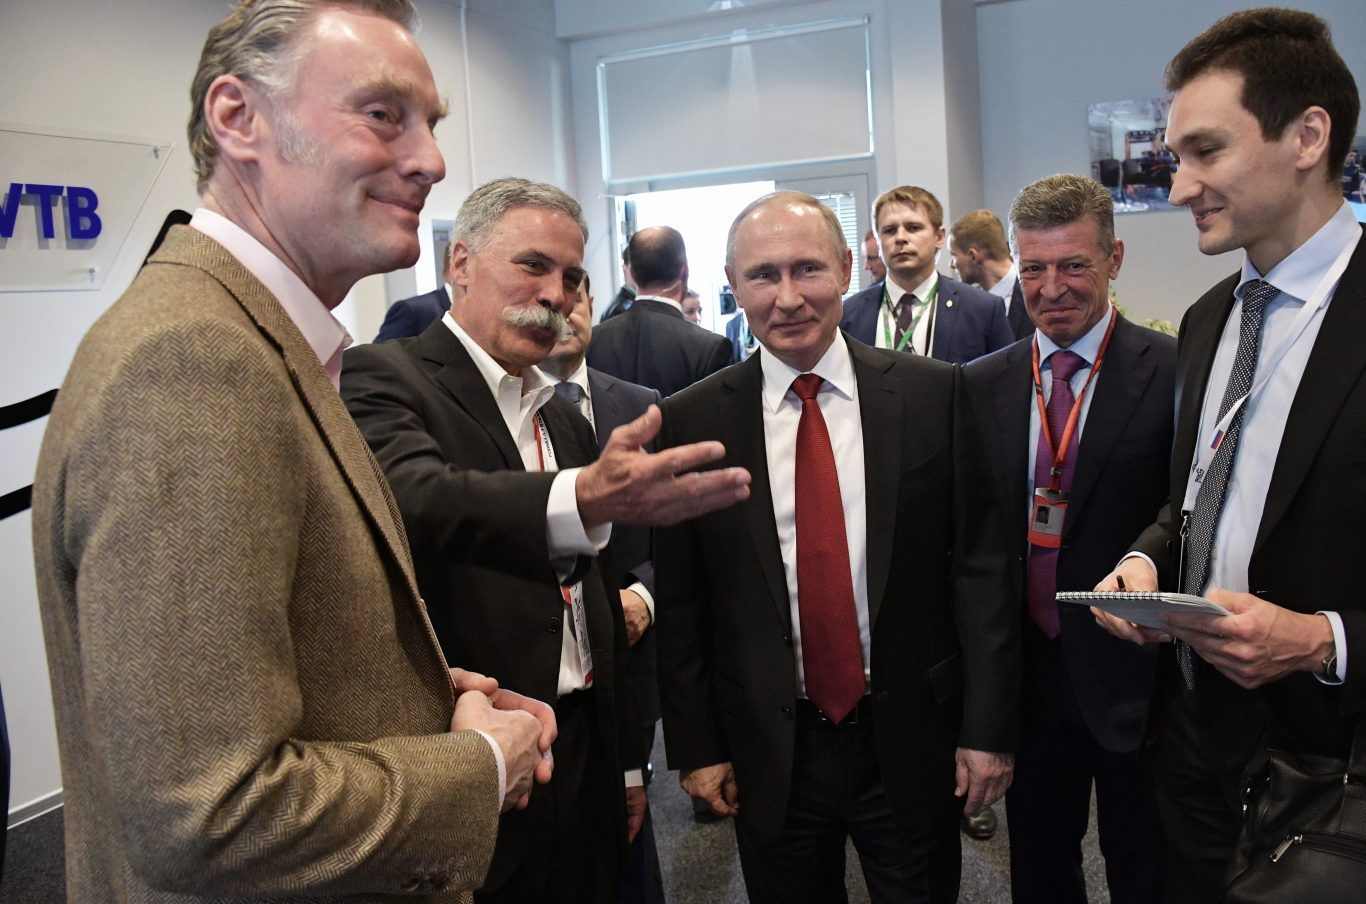 Russia's president Vladimir Putin, center, listens to Chase Carey